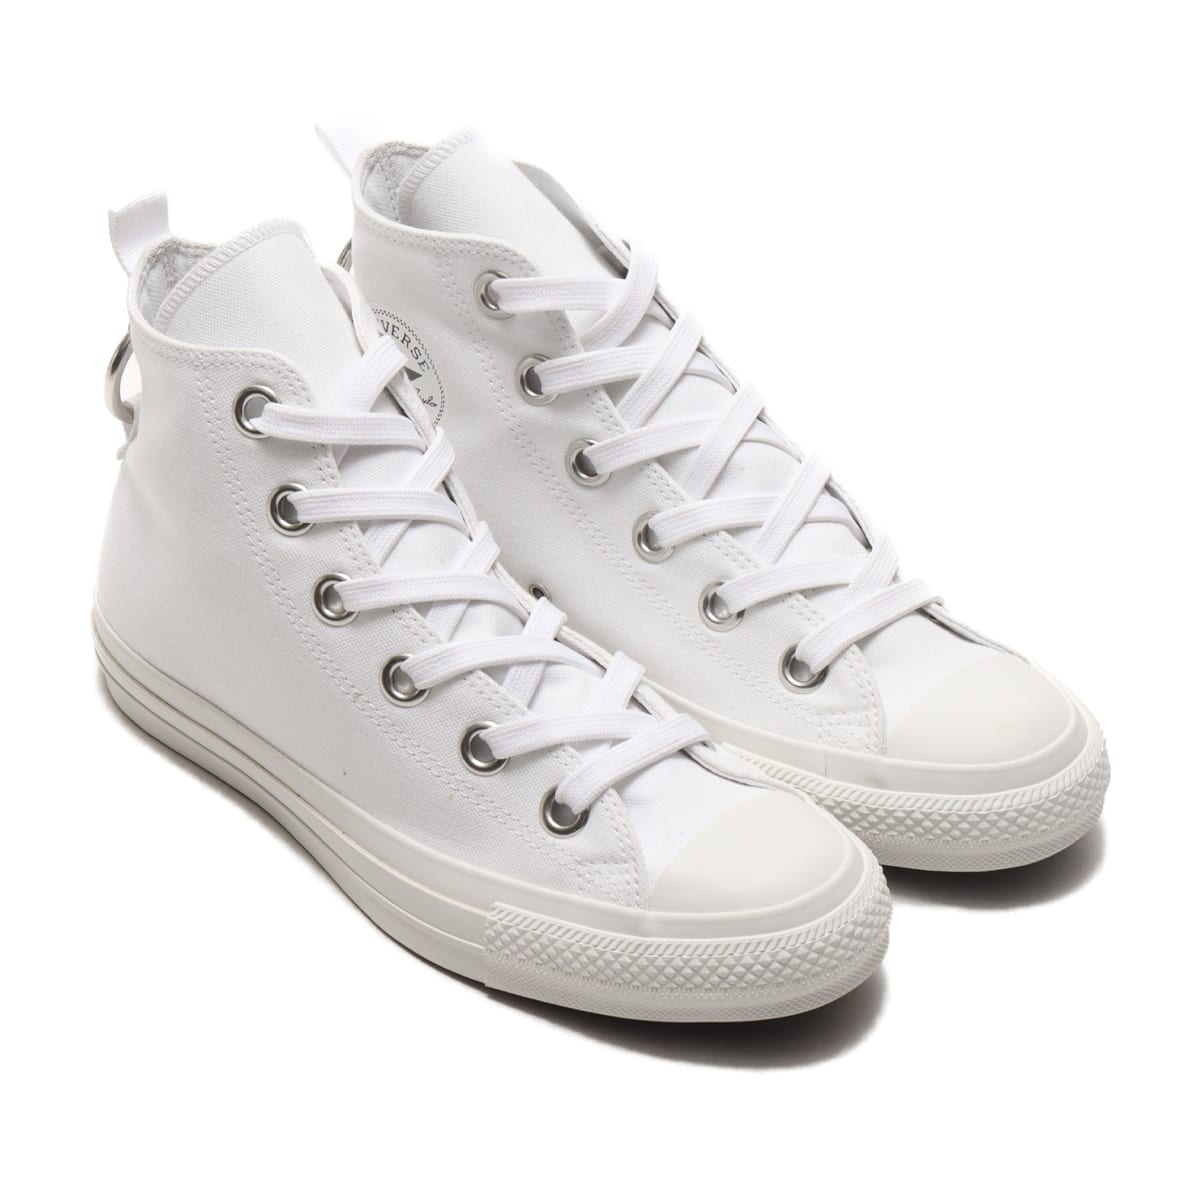 CONVERSE ALL STAR 100 METALRING HI ホワイト 20FW-I_photo_large